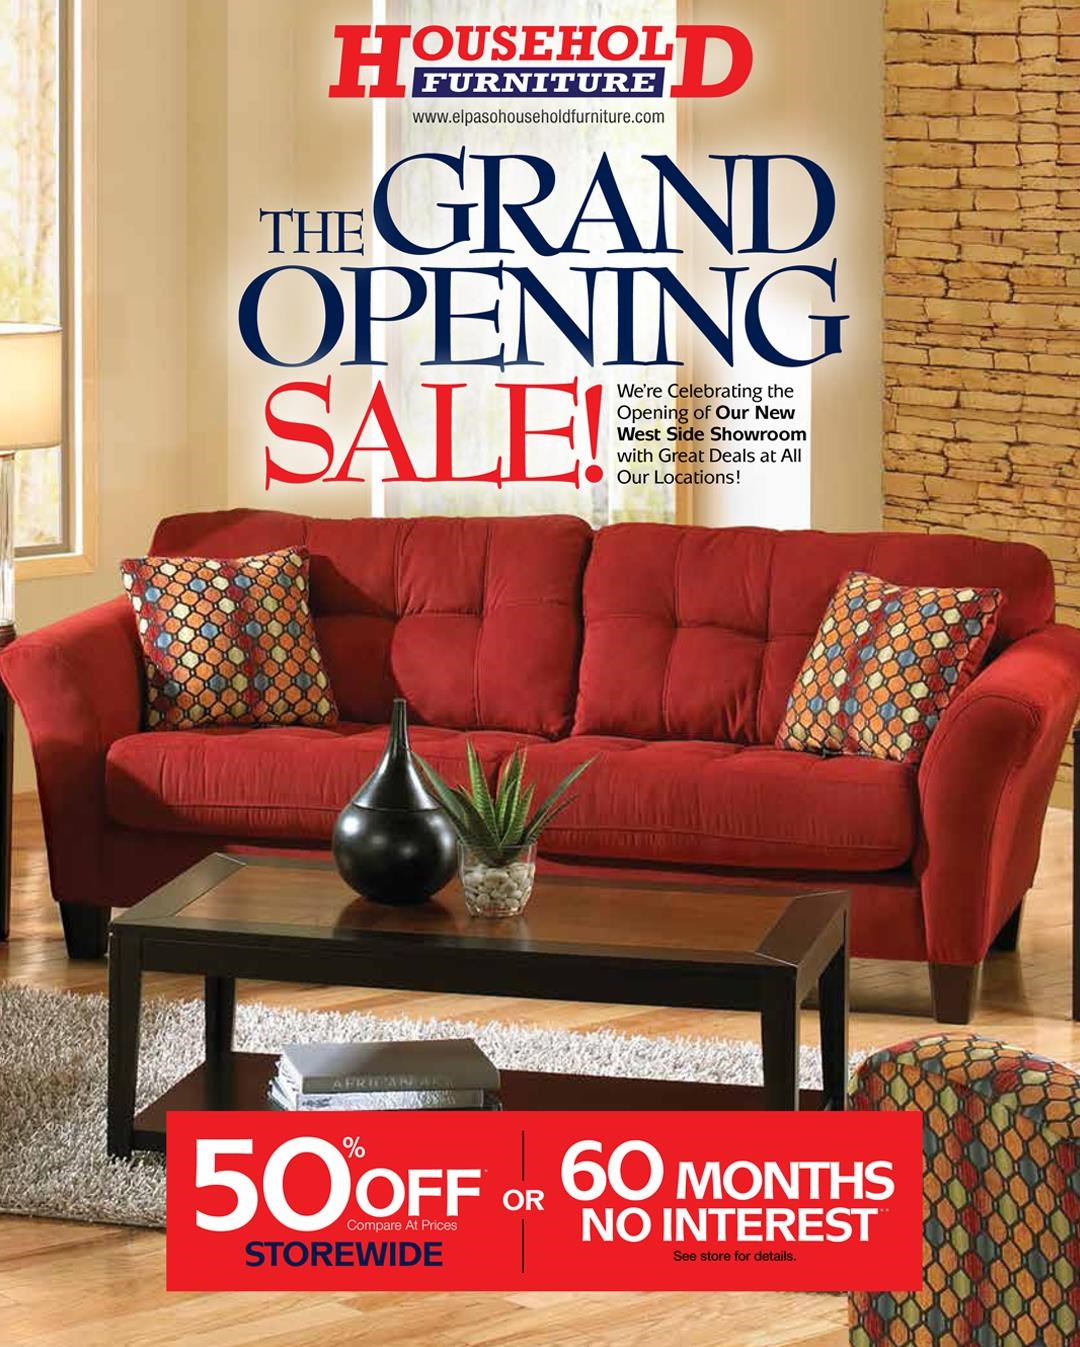 Furniture Store For Sale: Household Furniture